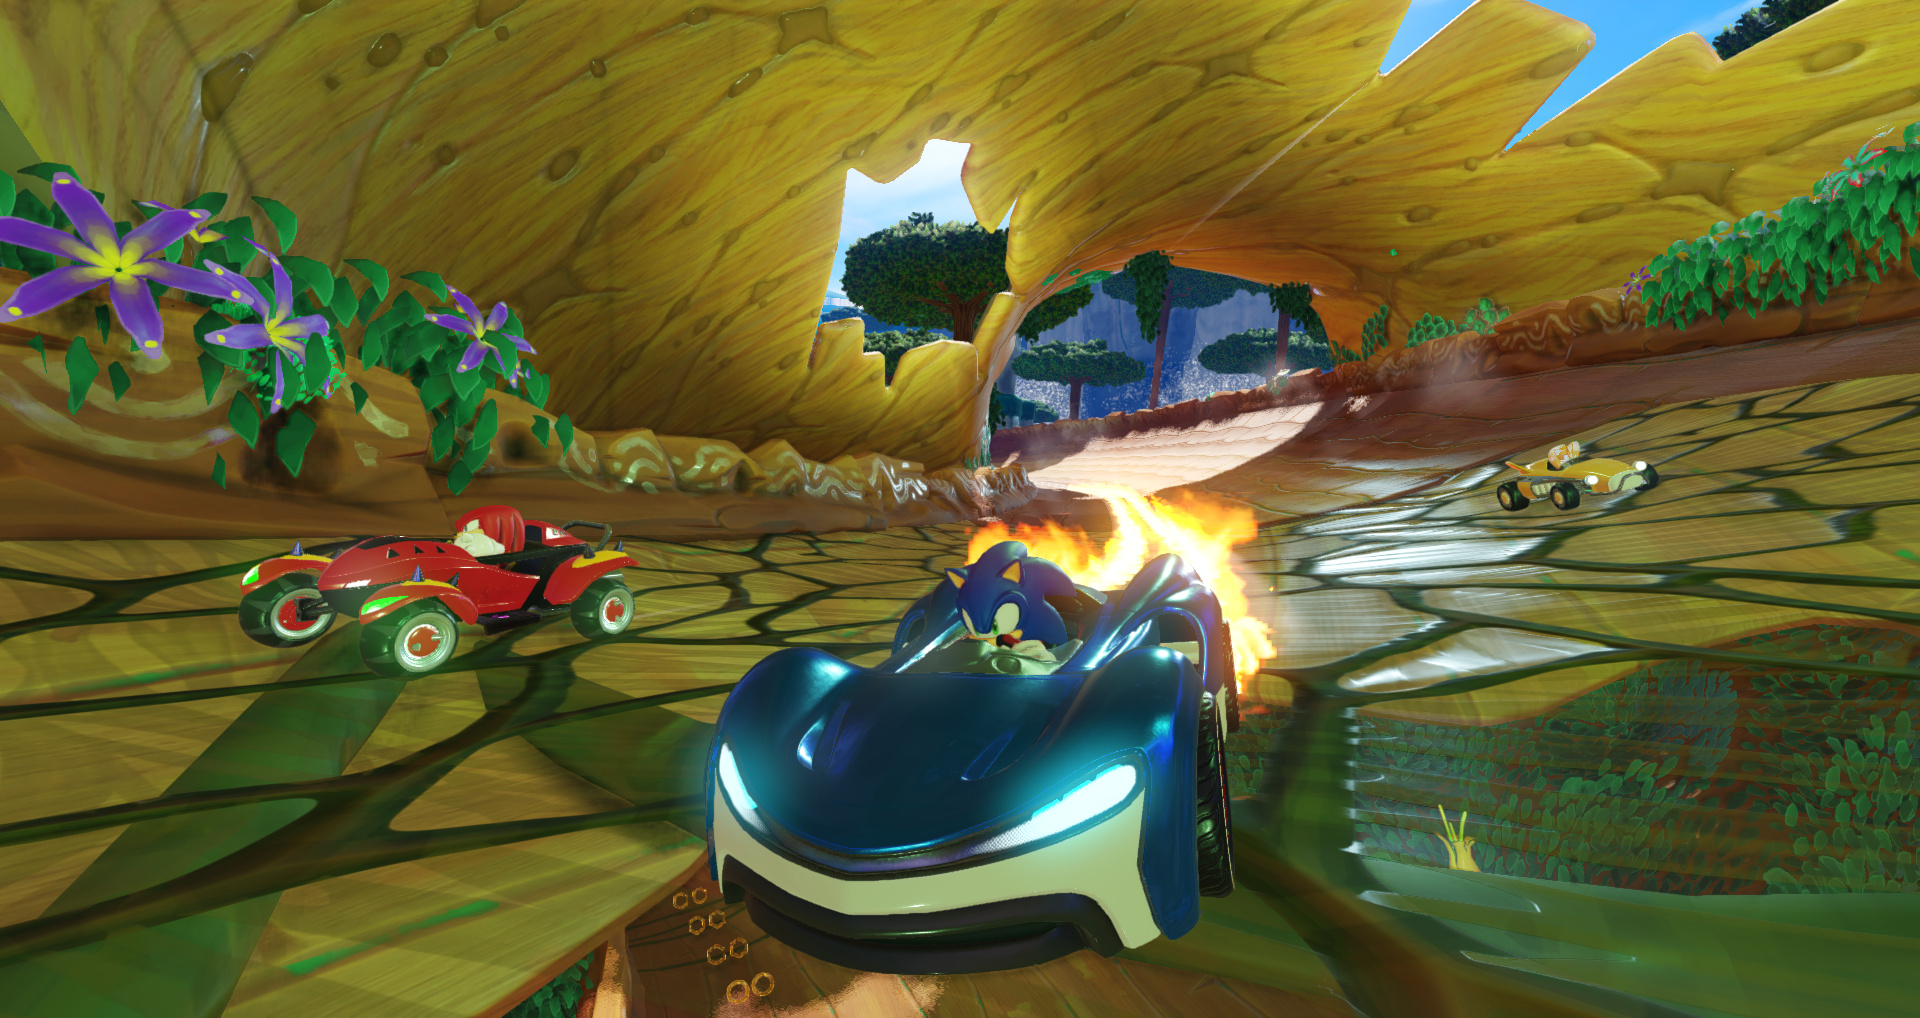 New Sonic Game For Ps4 : Walmart strikes again team sonic racing leaked via